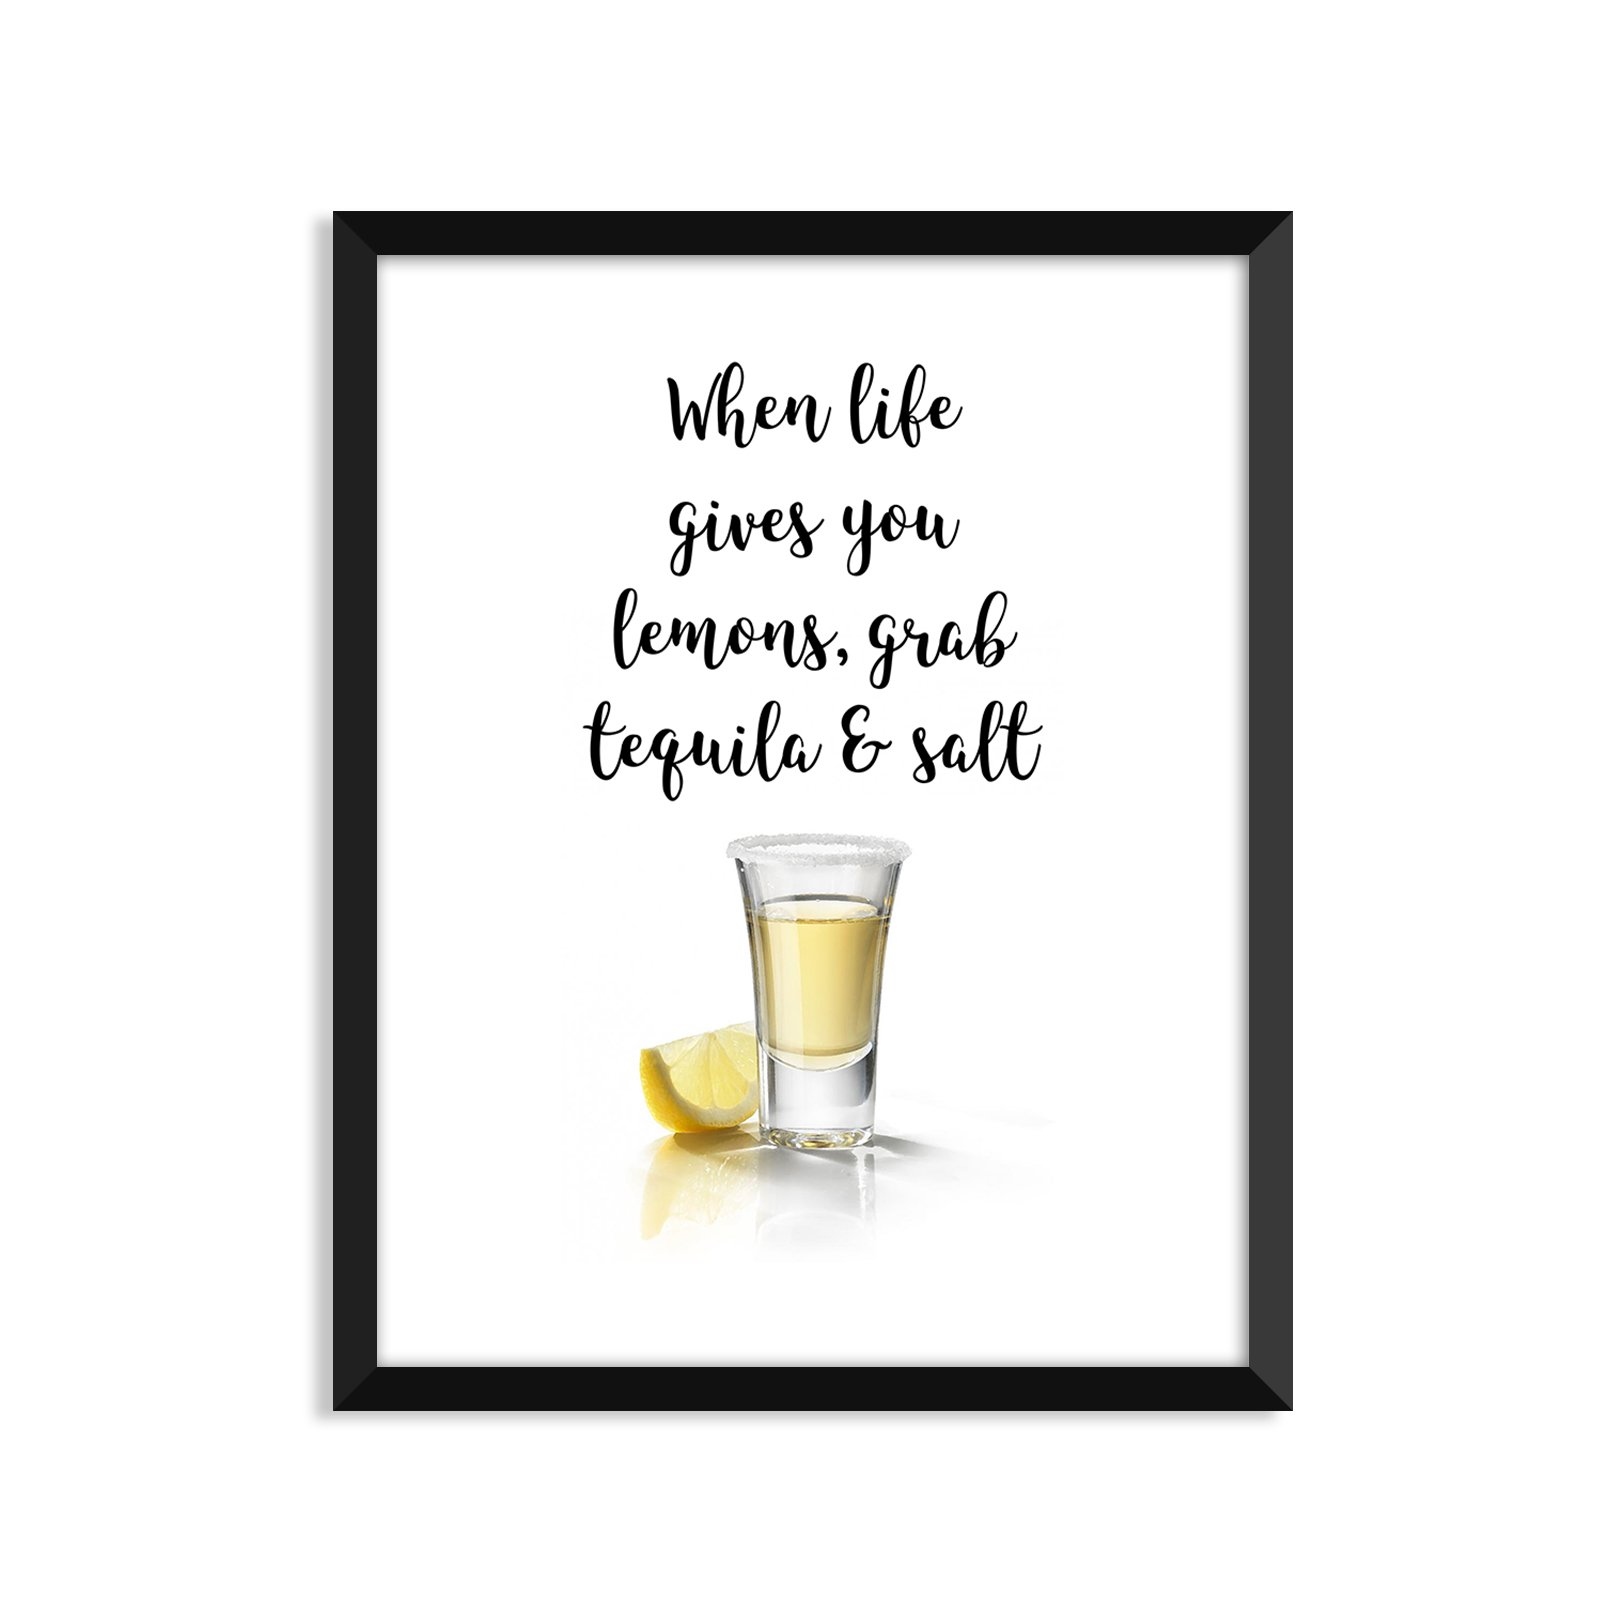 When Life Gives You Lemons, Inspiration Quote, Funny, Adult, Minimalist Poster, Home Decor, College Dorm Room Decorations, Wall Art